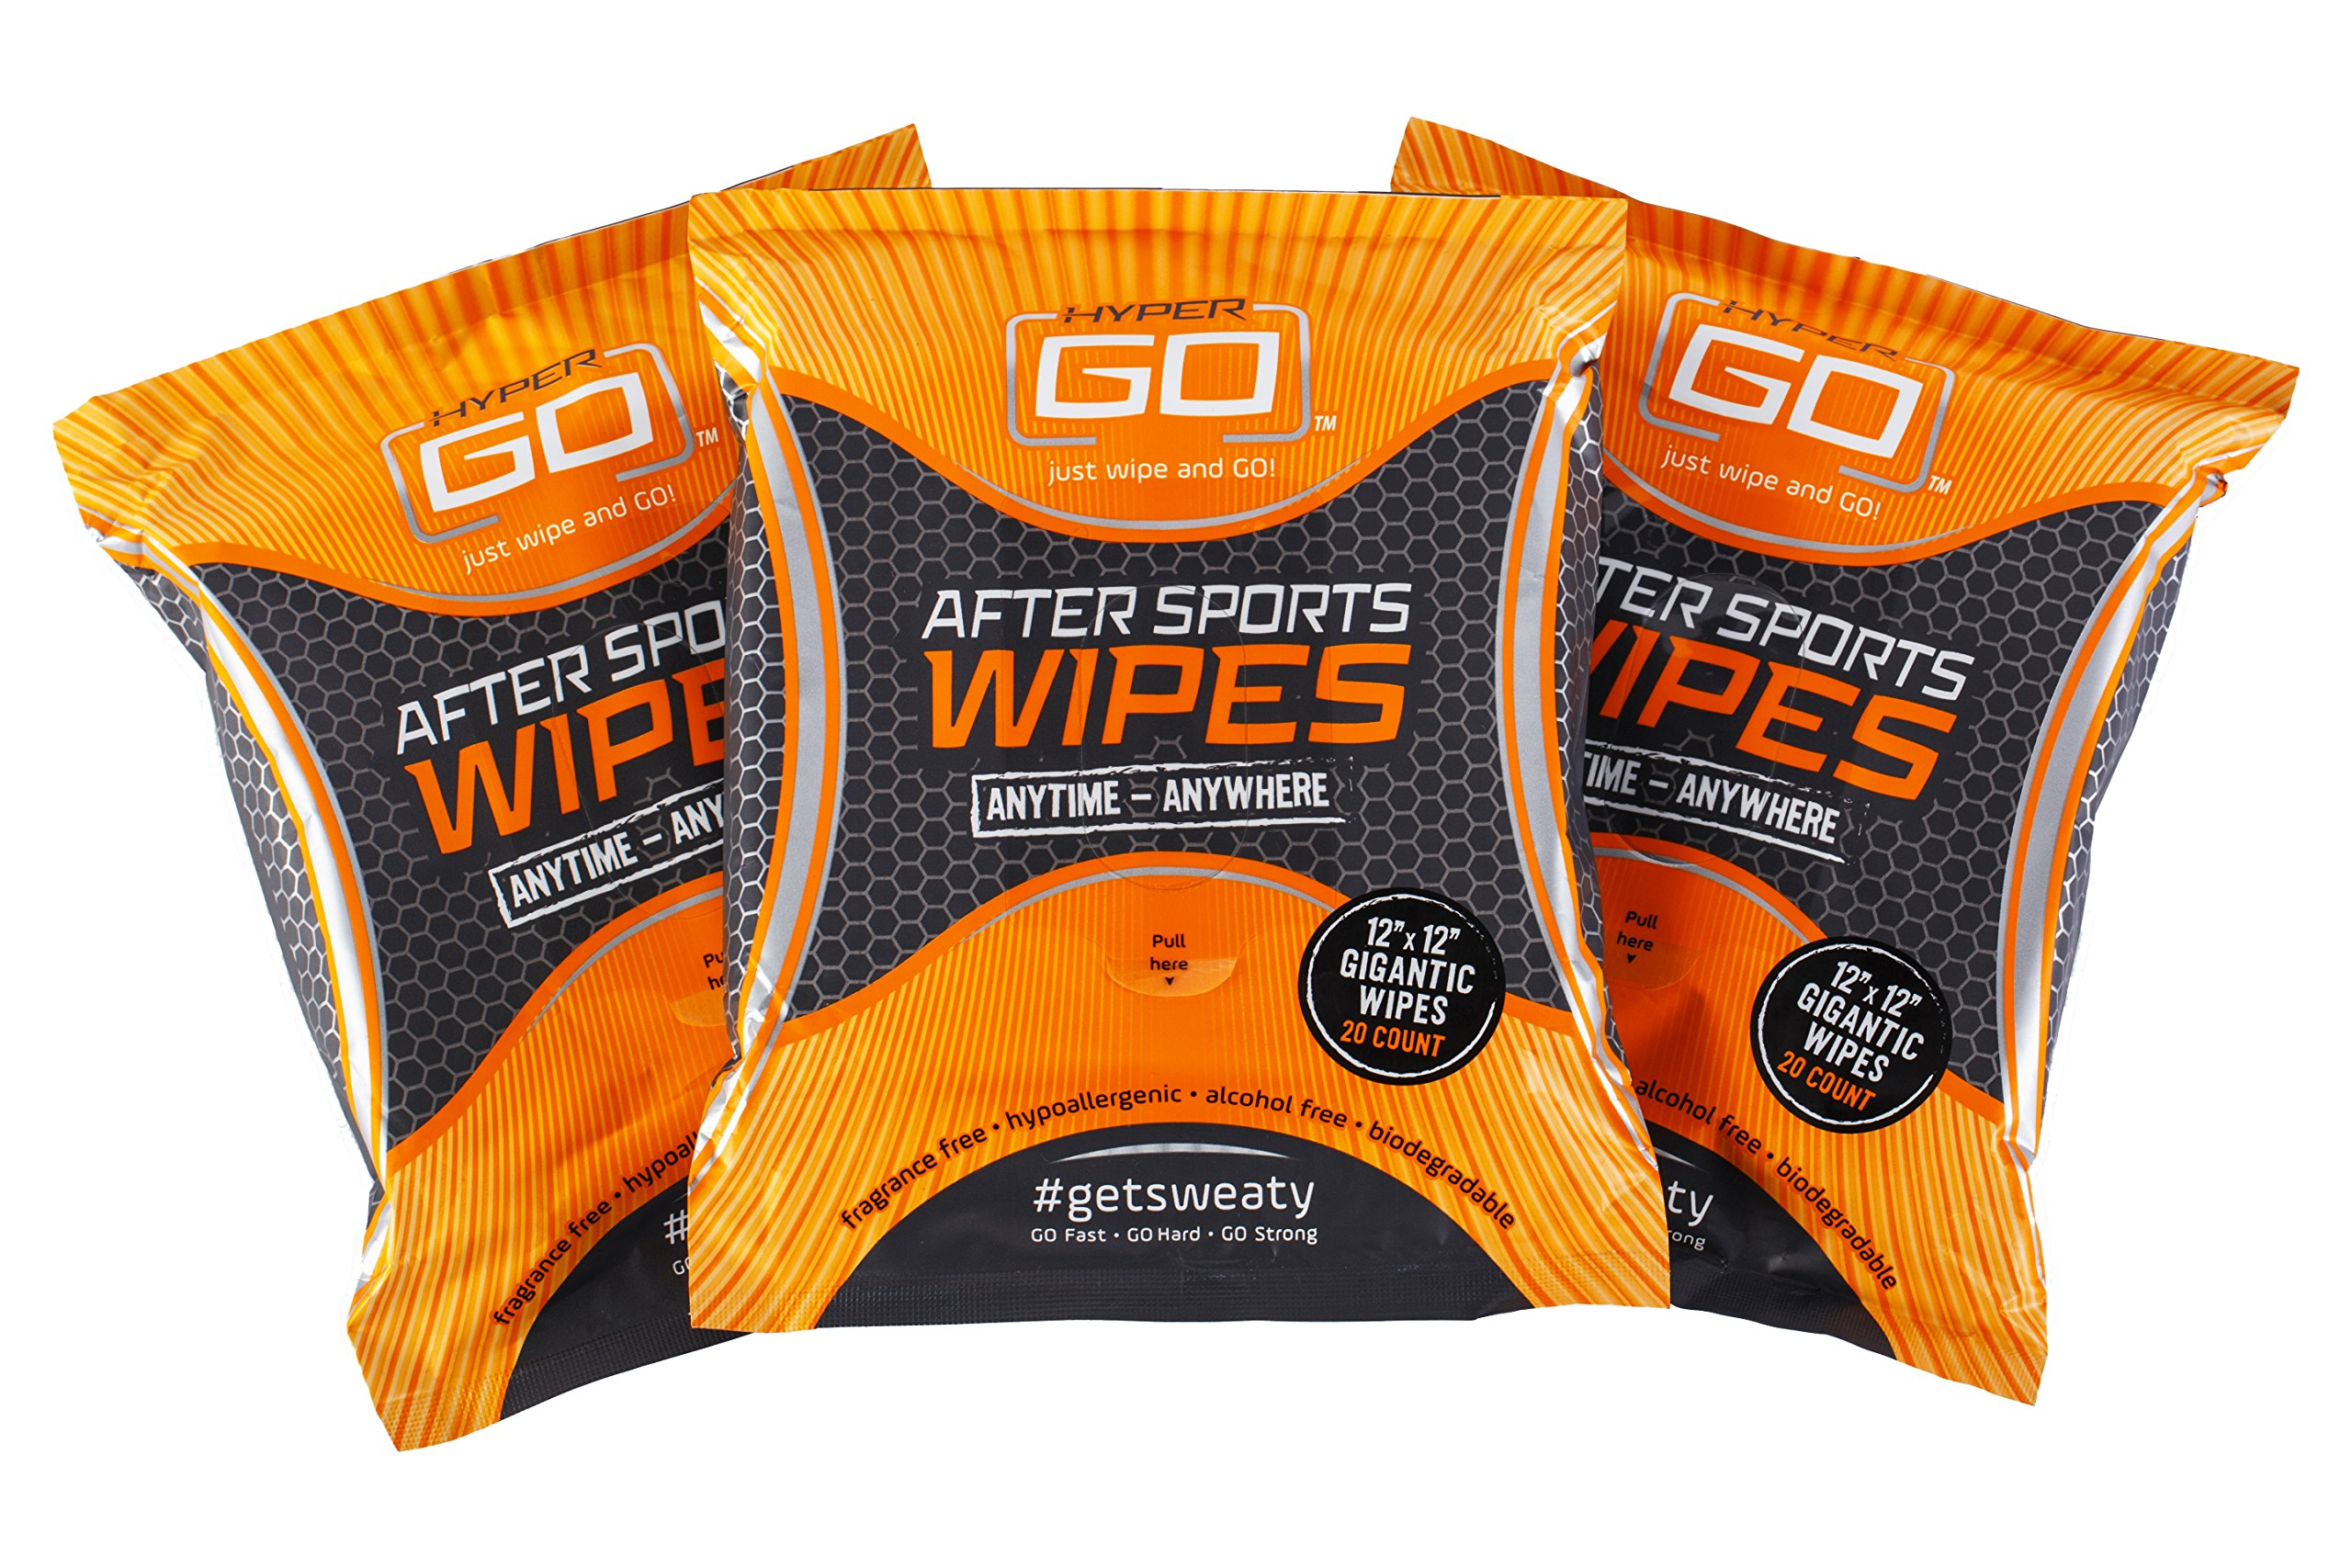 HyperGo After Sports Wipes, Full Body Wipes, Unscented, Hypoallergenic, All Natural Ingredients, Biodegradable (20 Wipes in Resealable Package) (3 Pack)